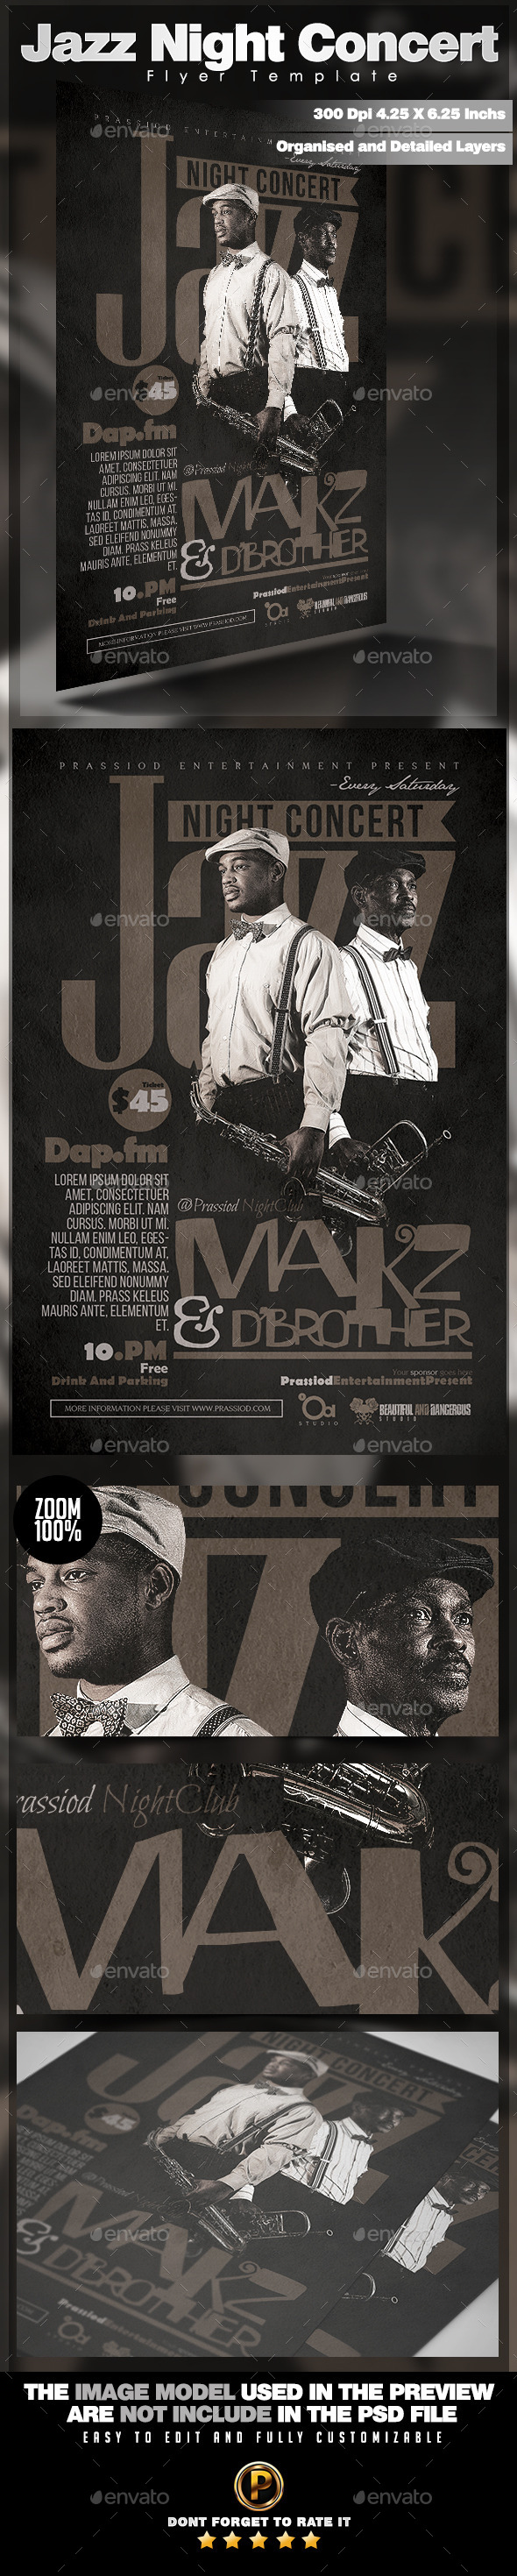 Jazz Night Concert Flyer Template - Concerts Events